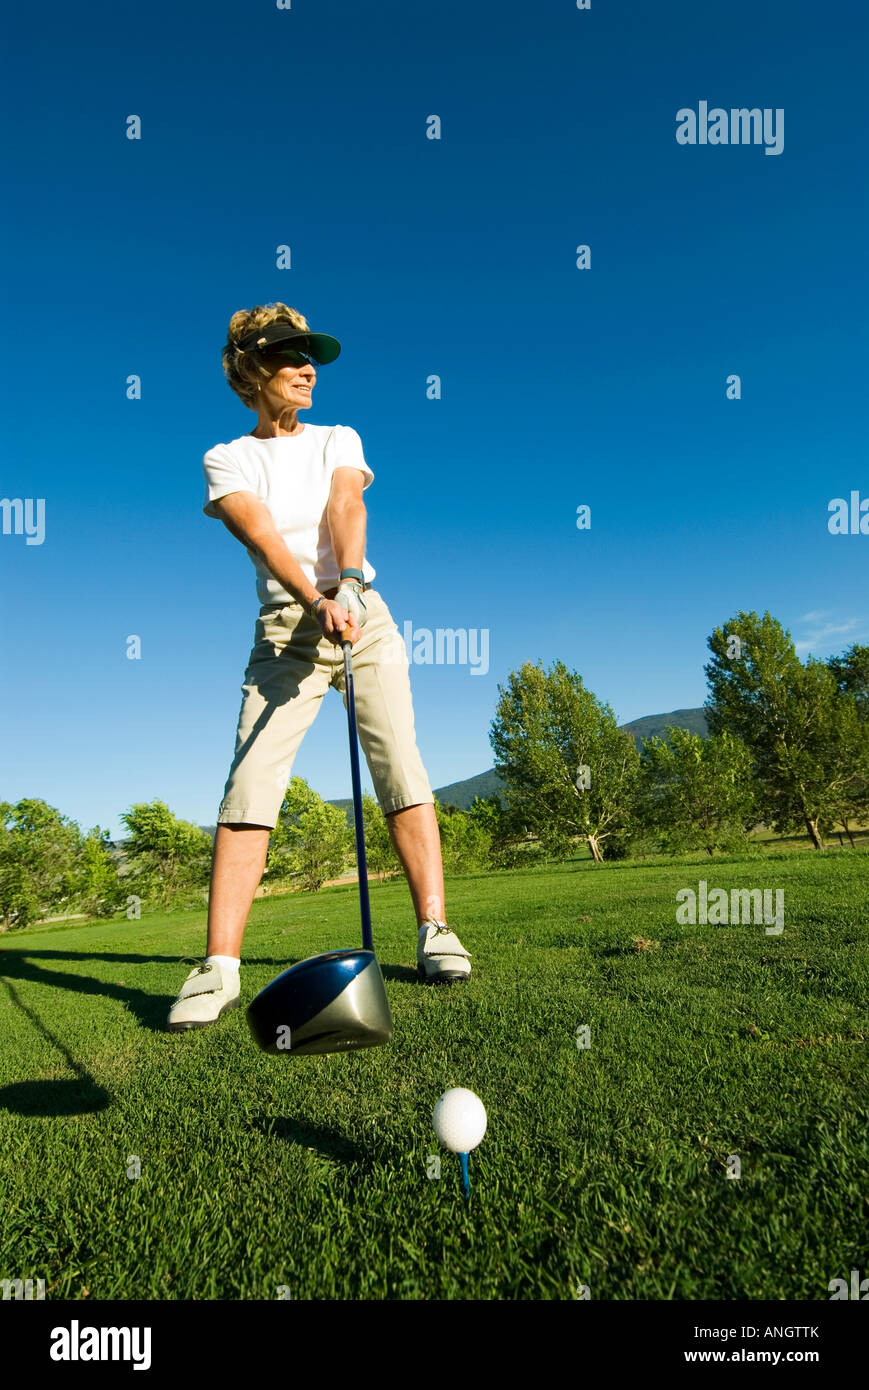 A women golfer gets ready to tee off on a course near Kamloops, British Columbia, Canada. - Stock Image